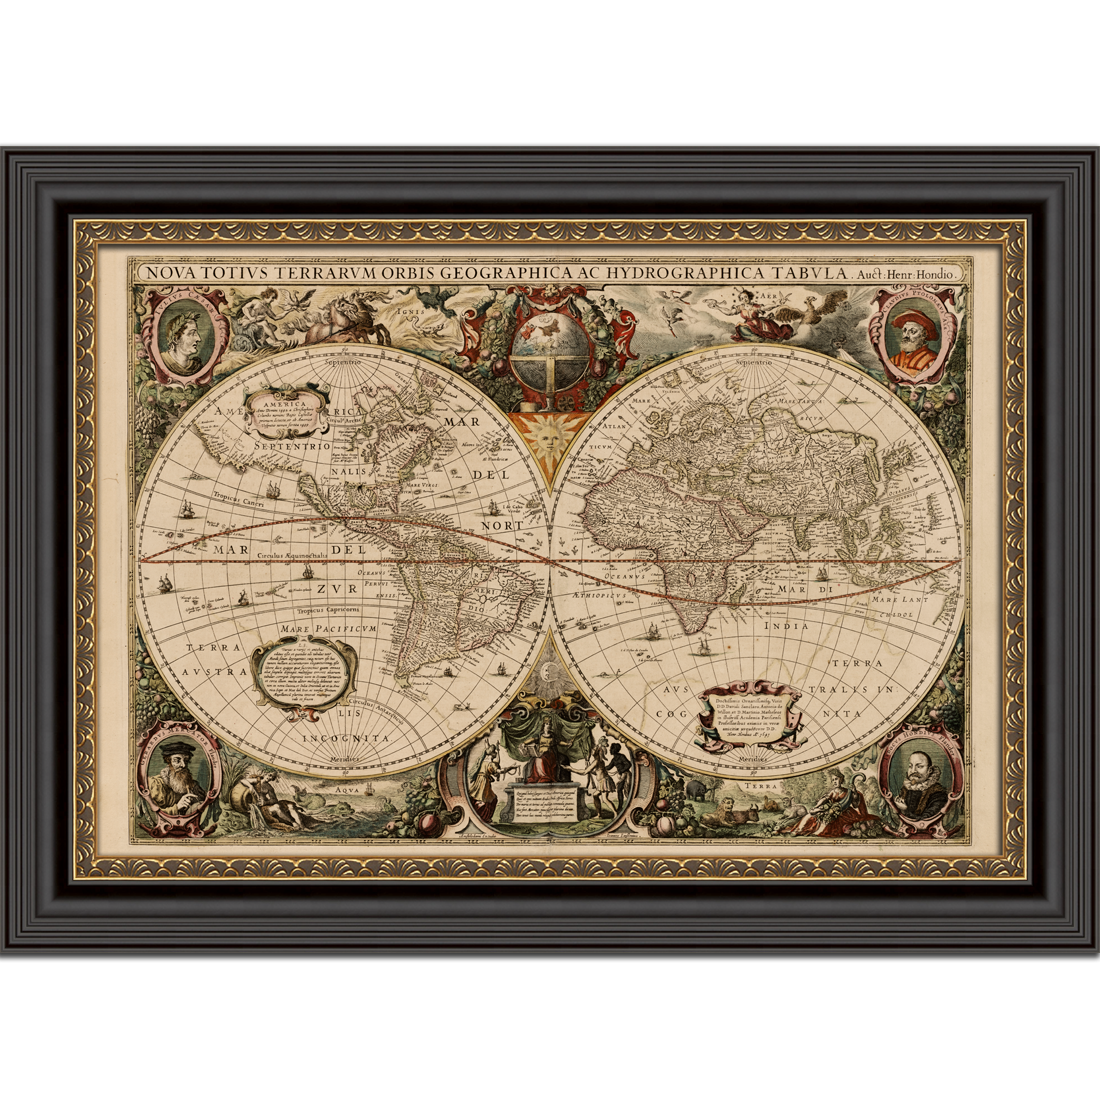 World map nova totius 1641 framed great minds art historic nova totivs 1641 gumiabroncs Images